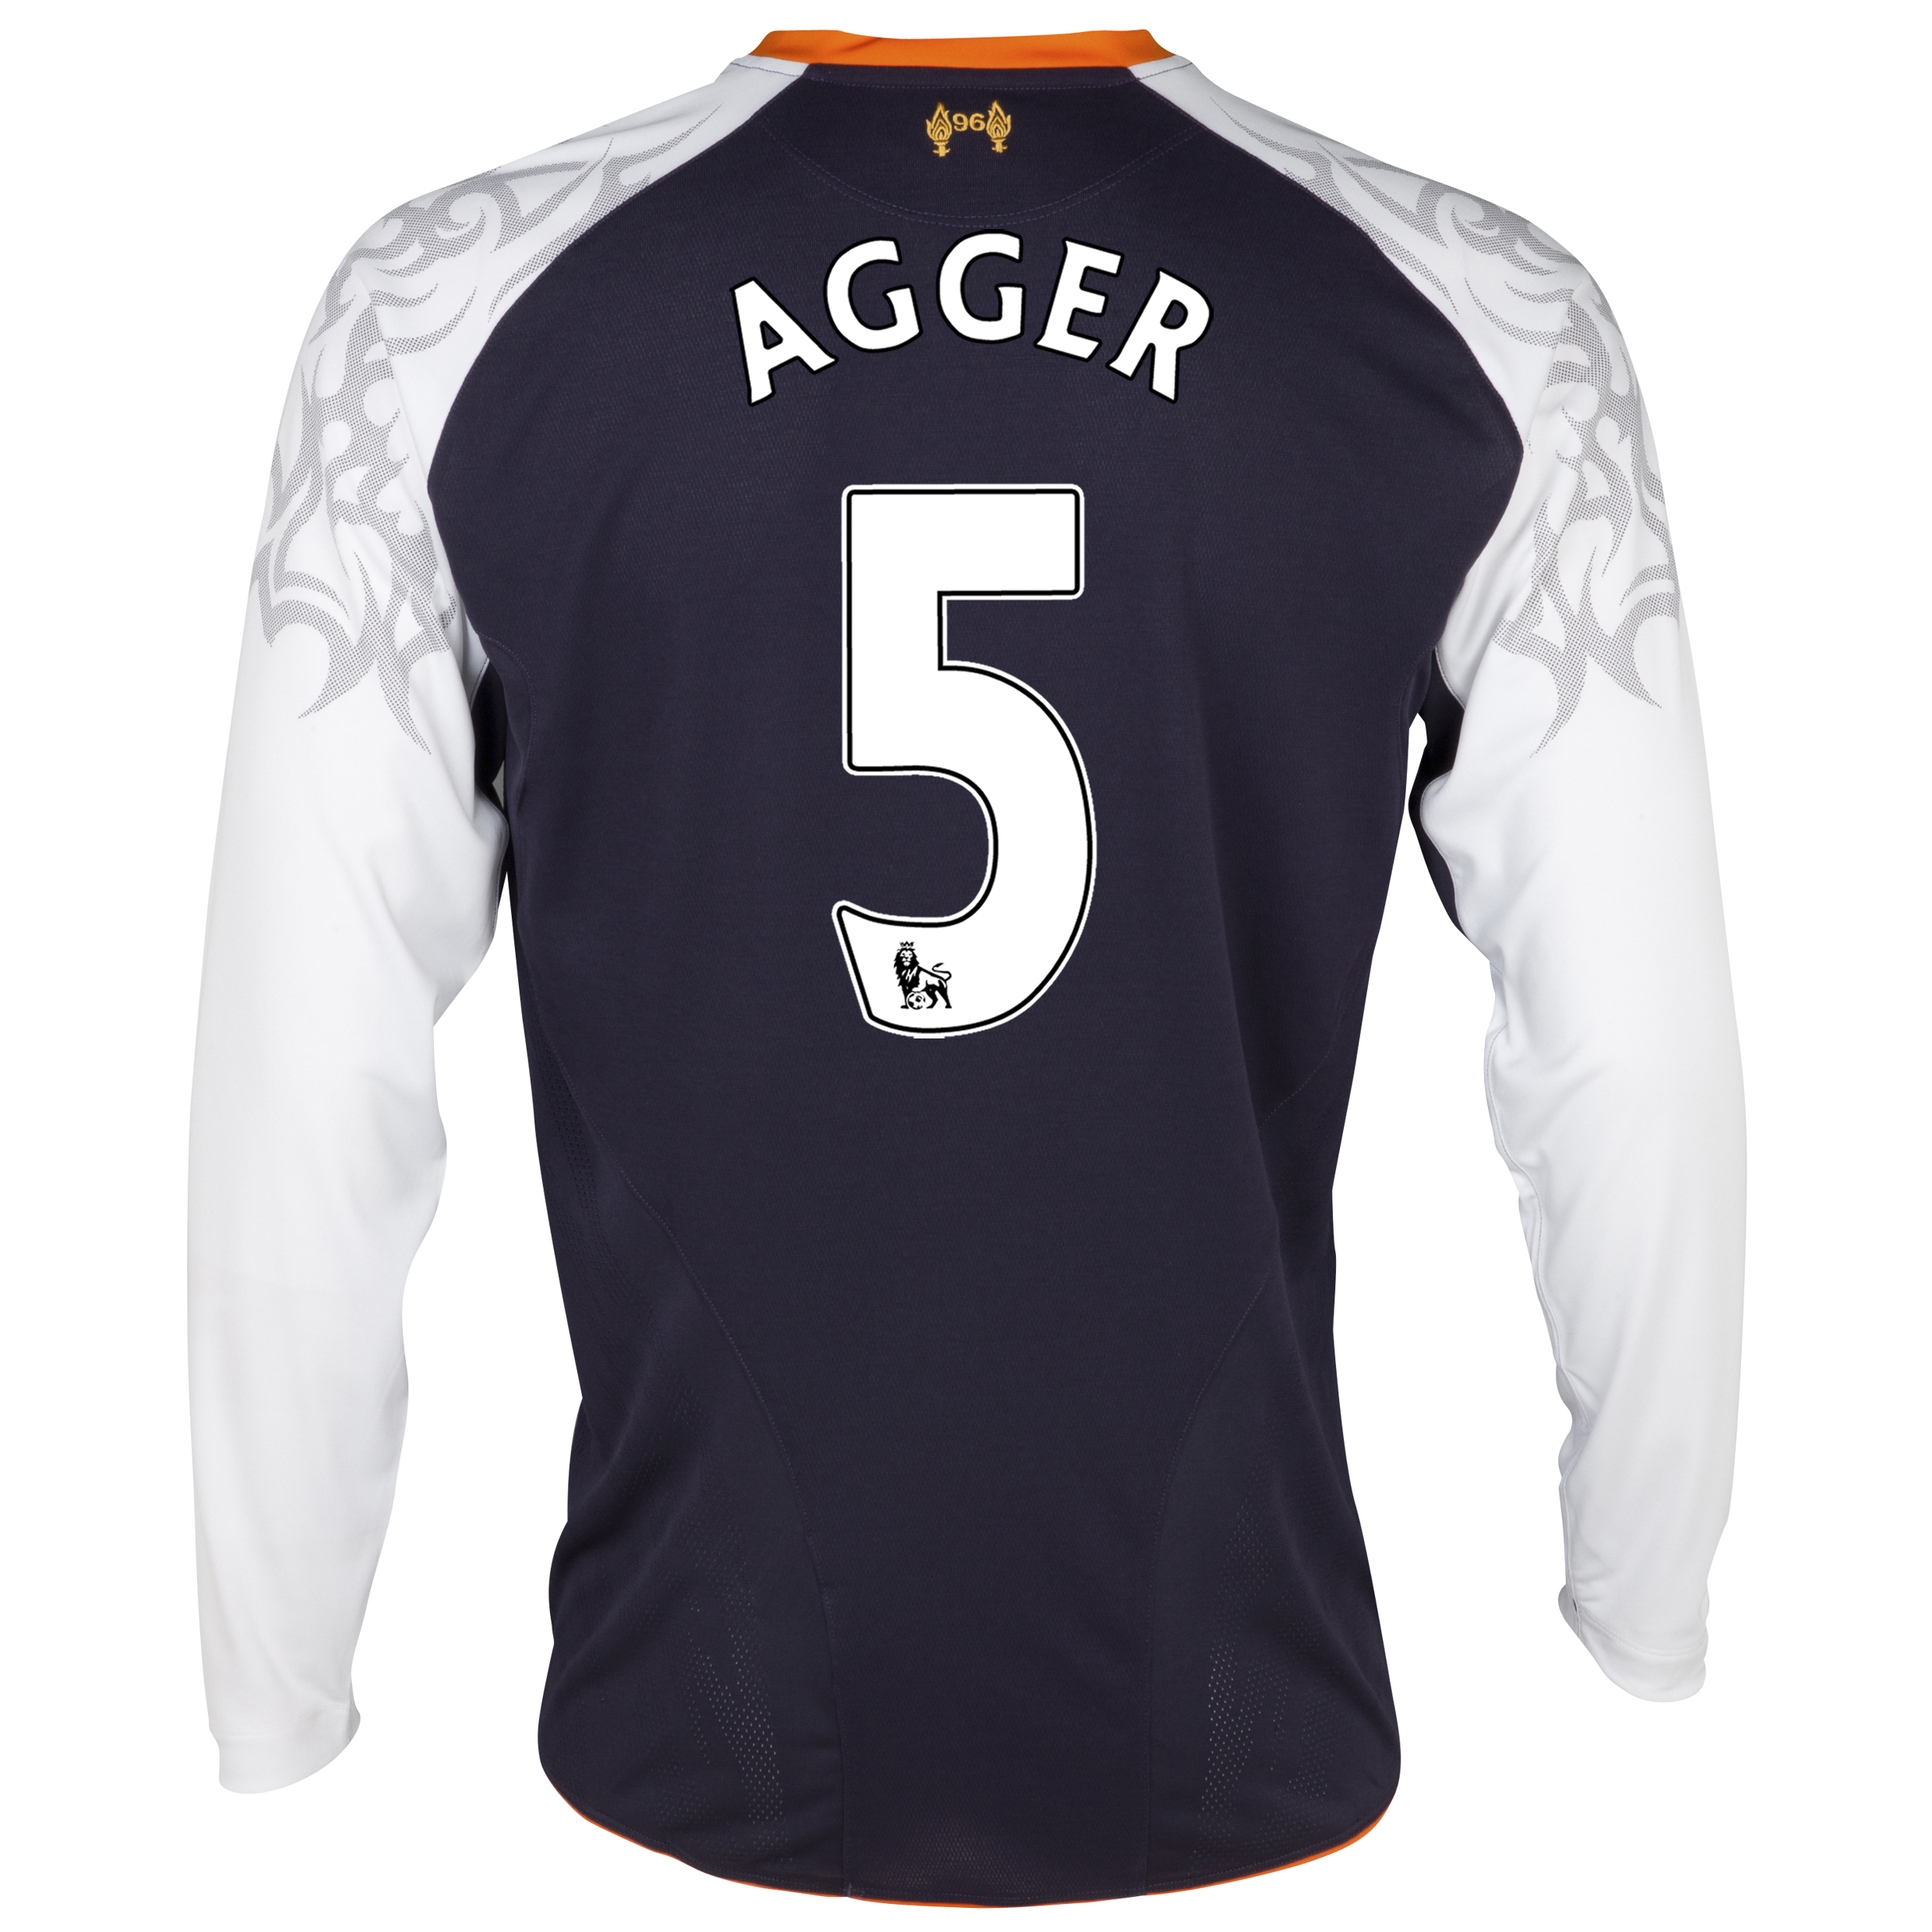 Liverpool Third Shirt 2012/13 - Long Sleeve - Youths with Agger 5 printing